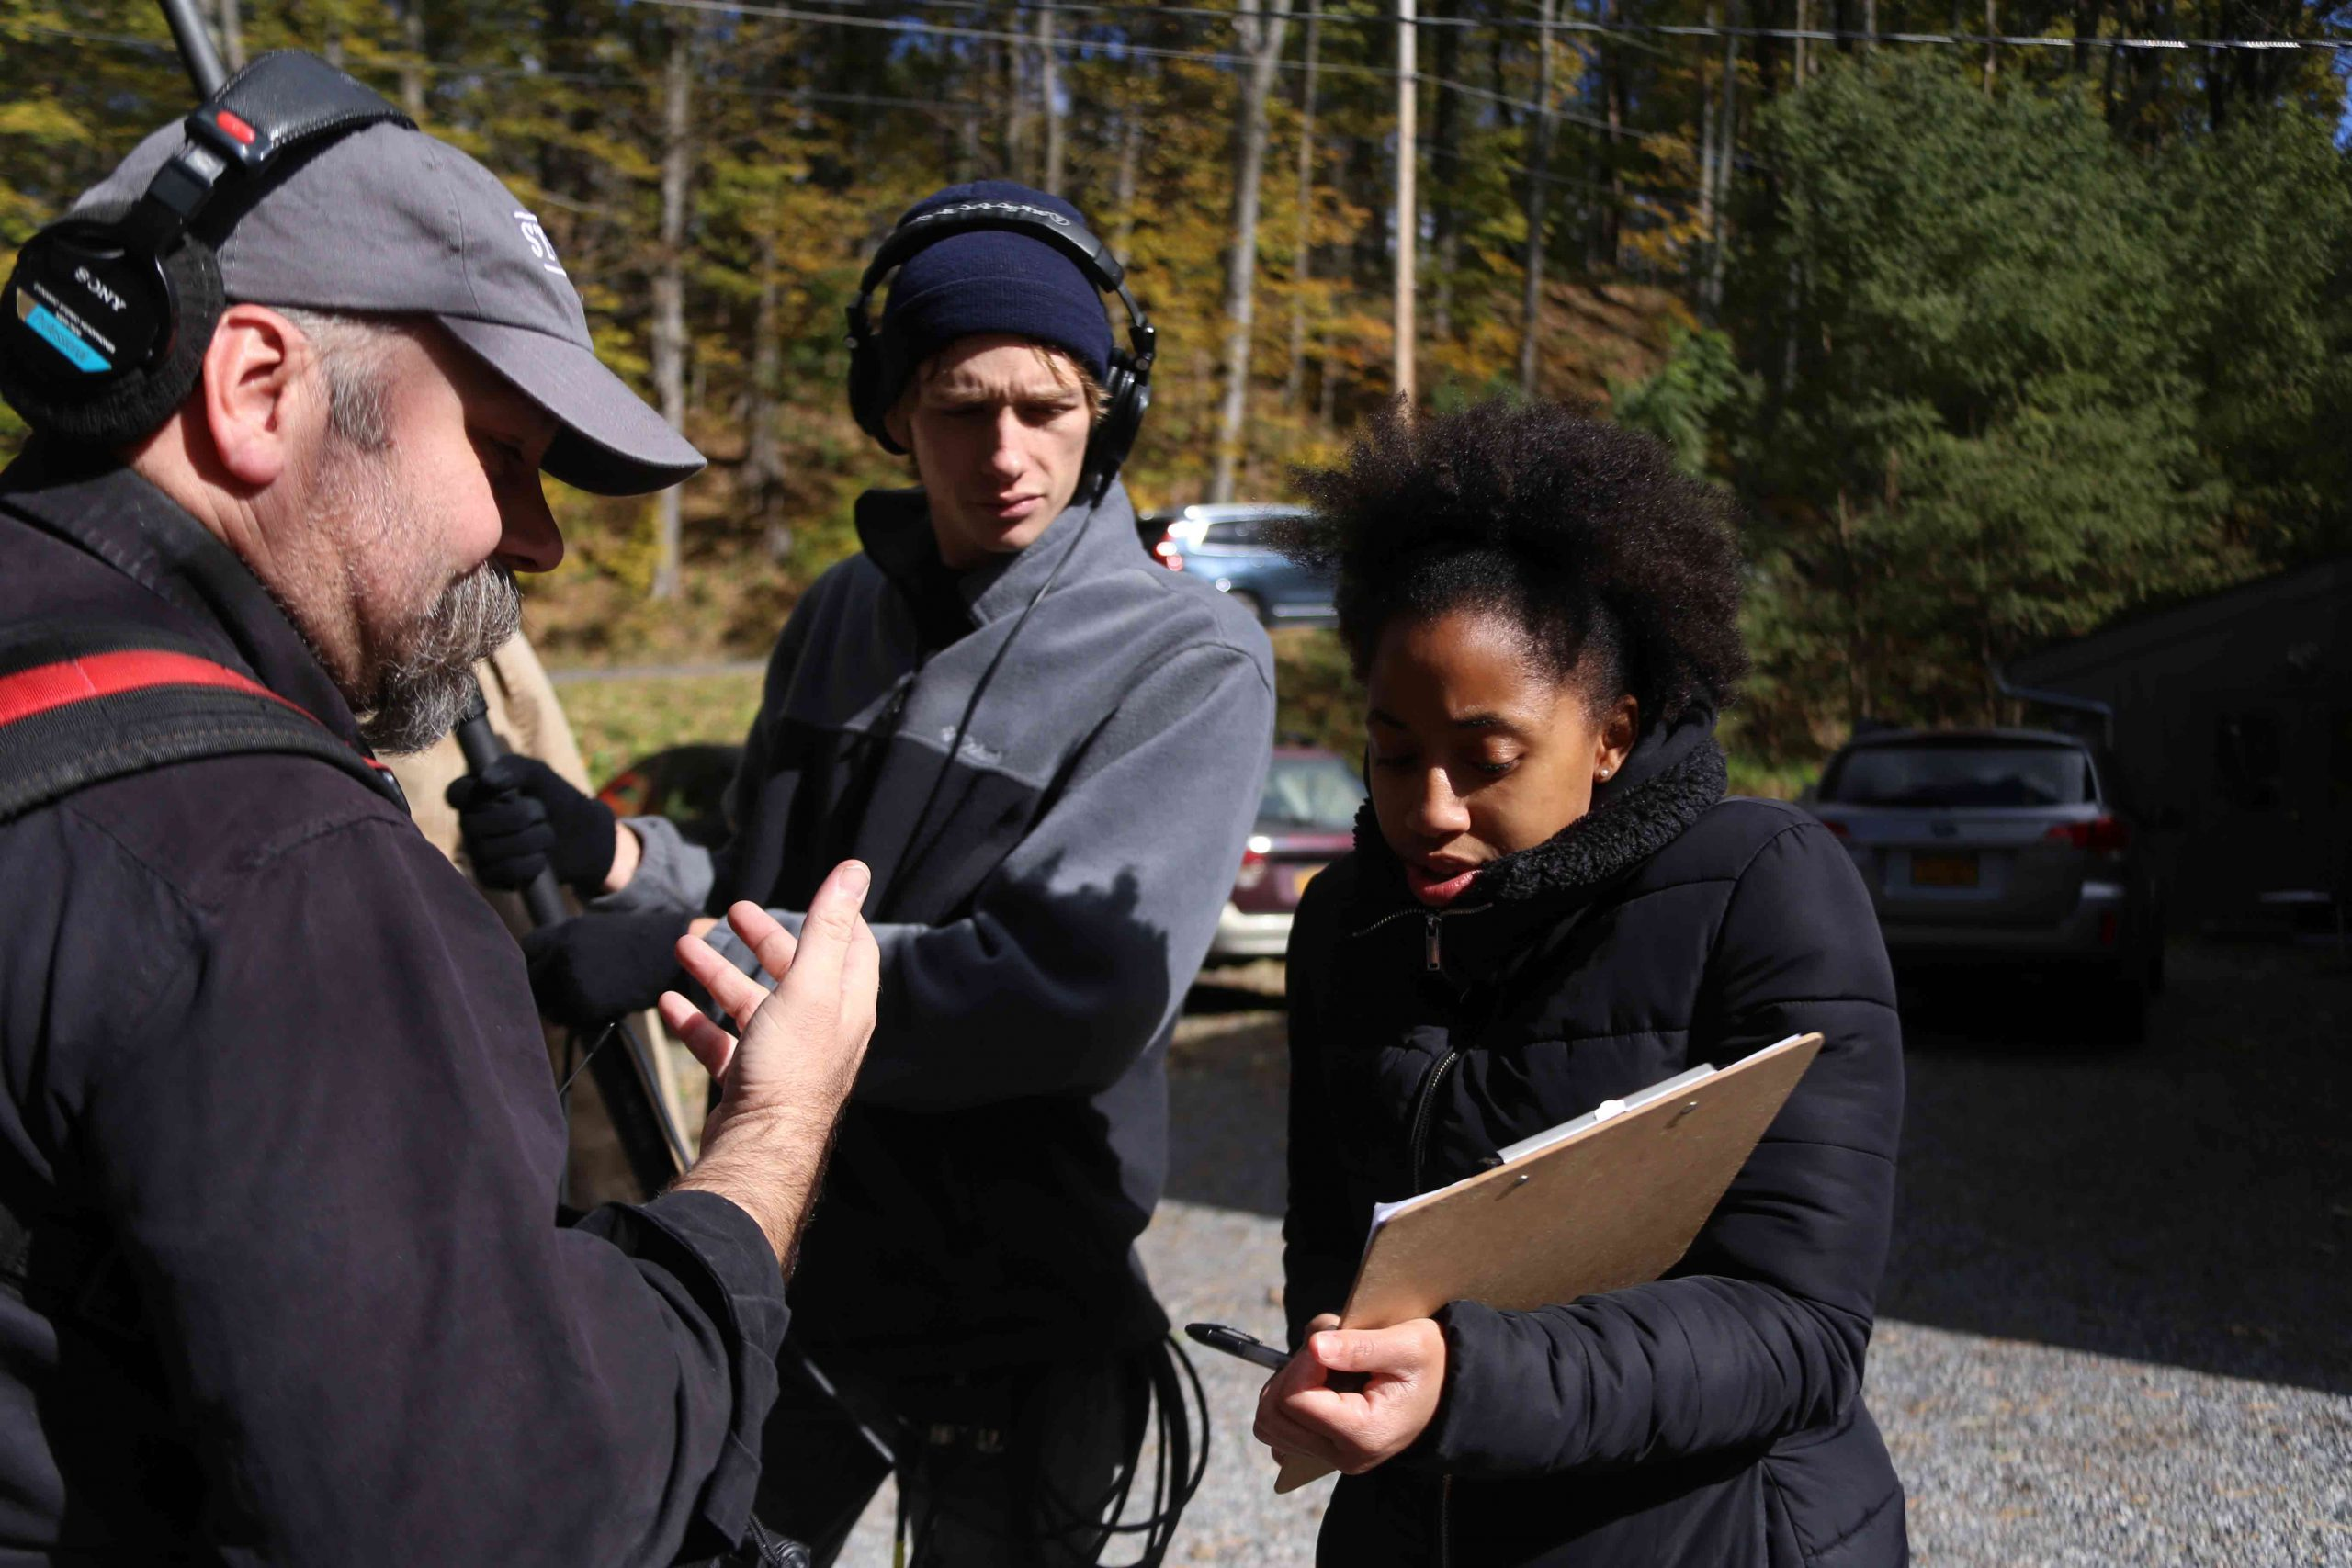 3 crew members talking to each other directing next steps of filming